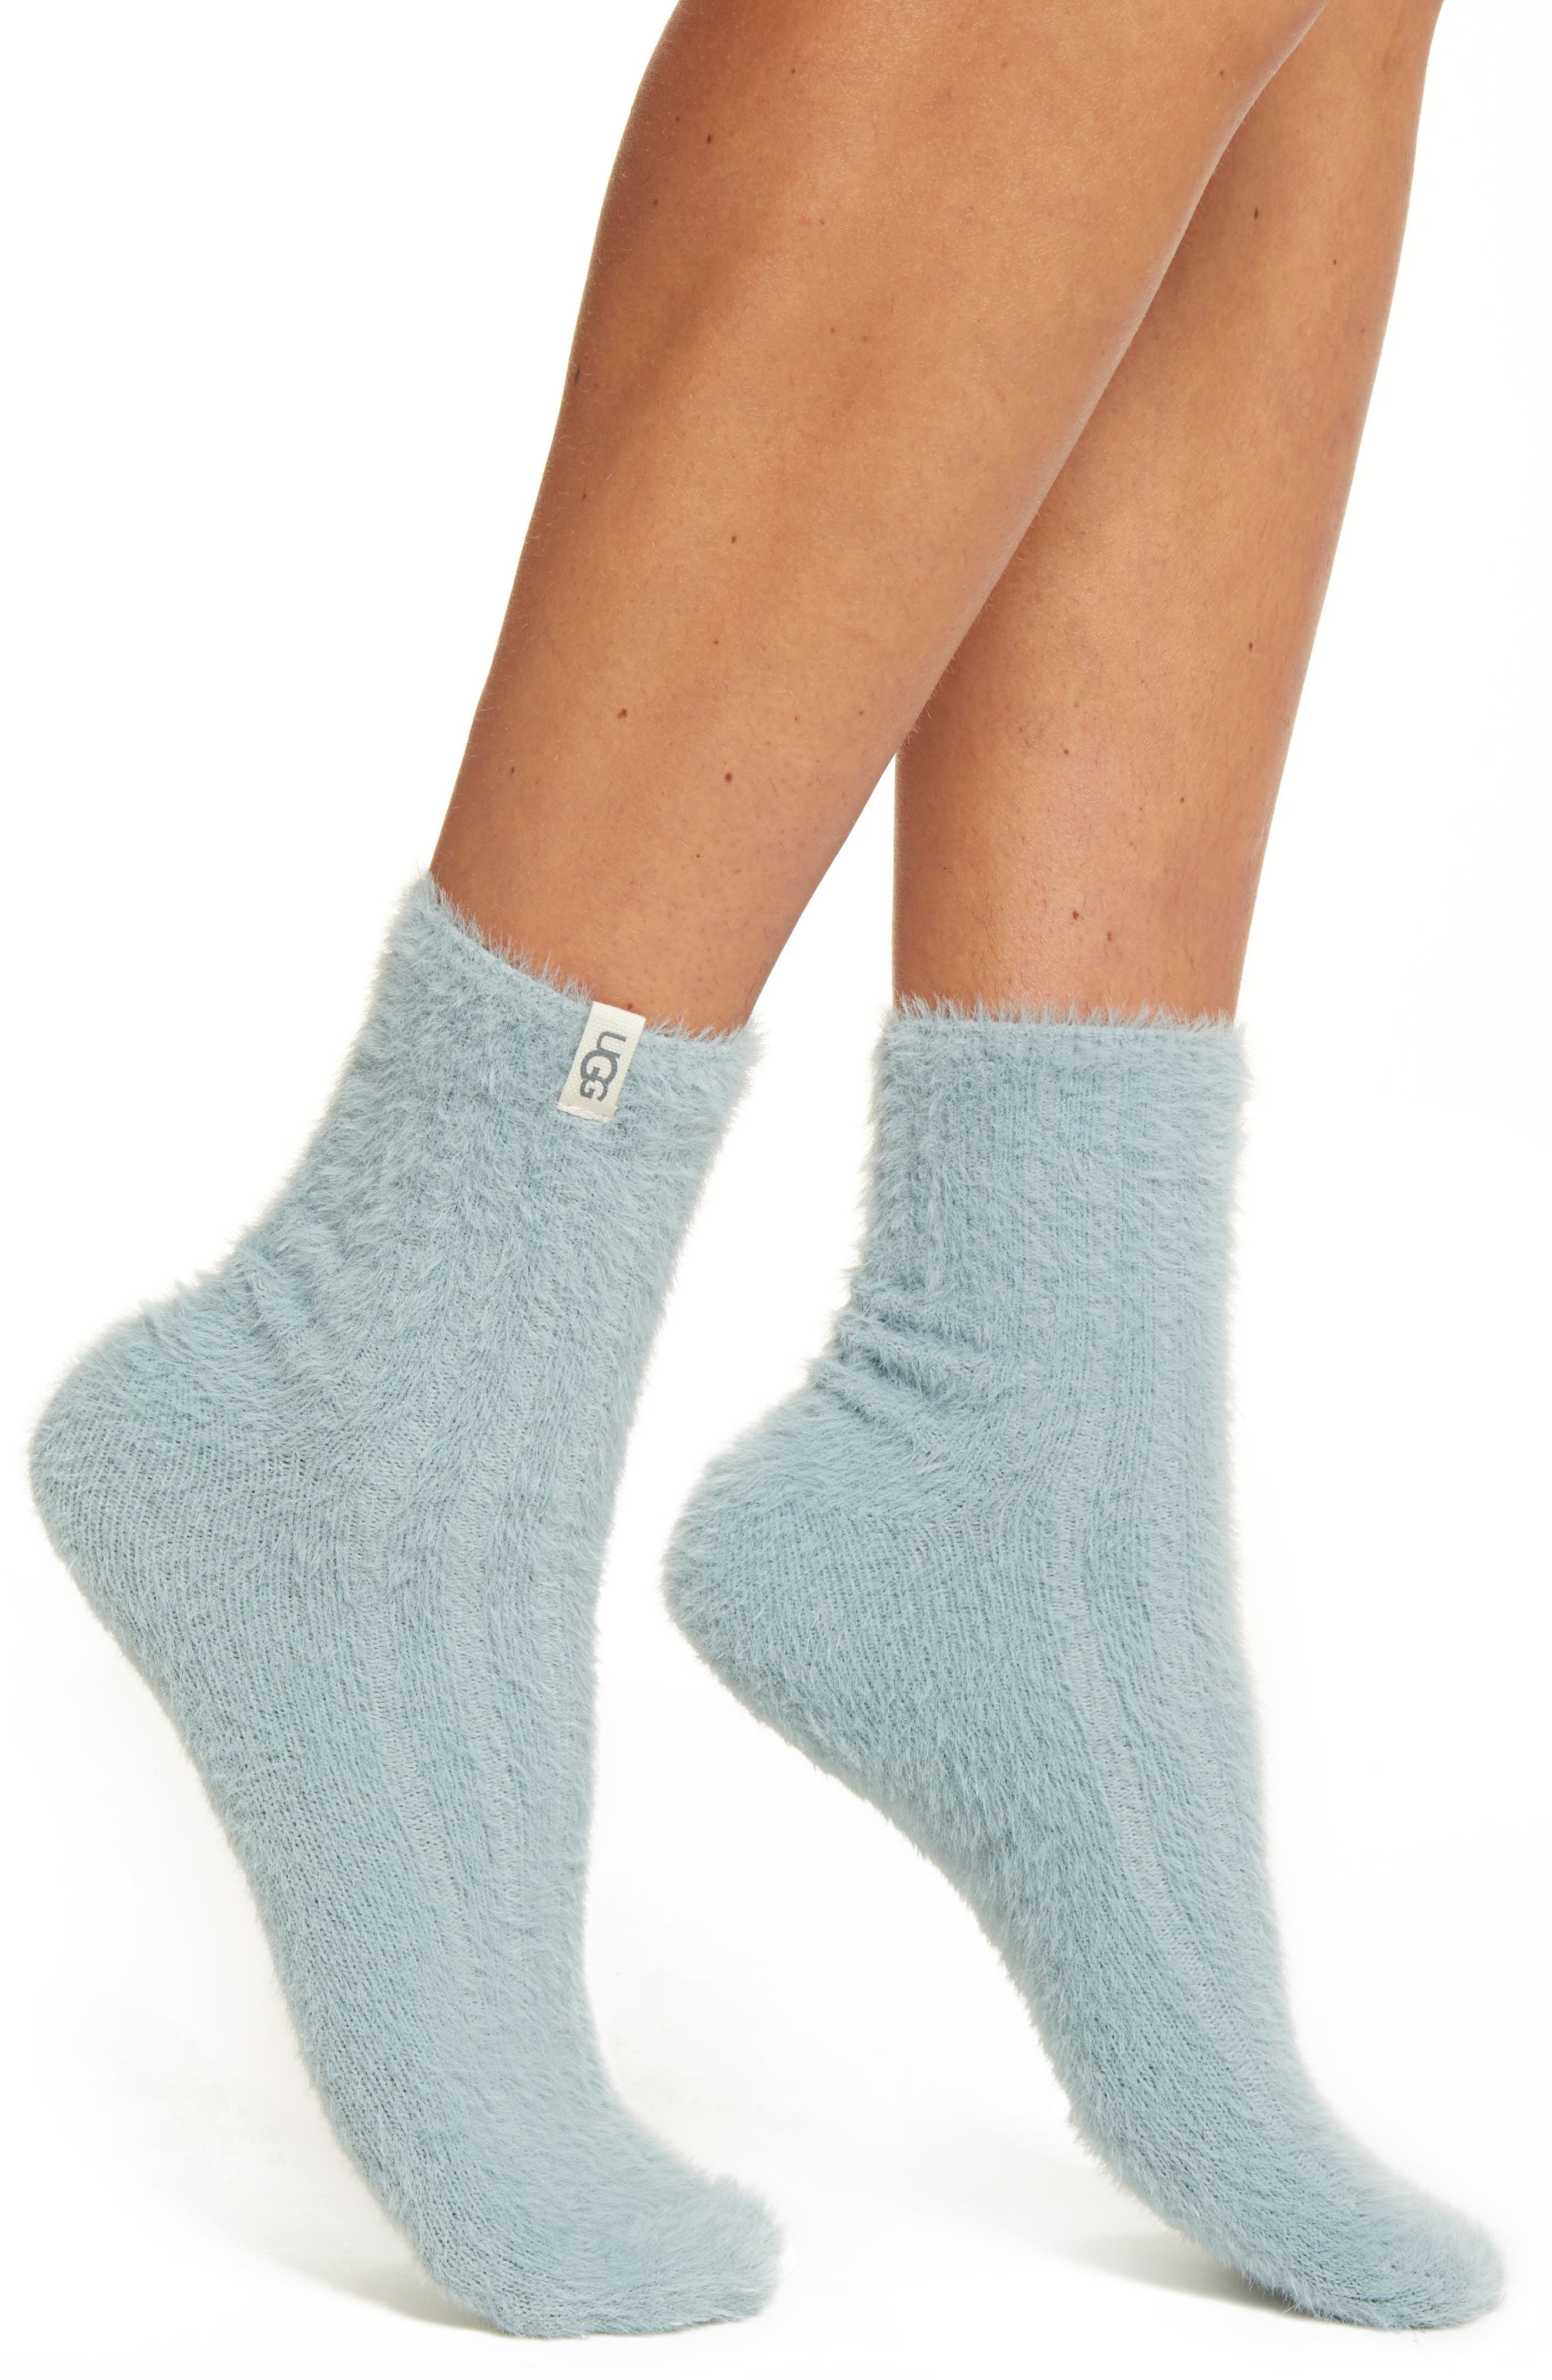 Treat your feet to fuzzy softness with these quarter-crew socks finished with a logo on the cuff. Style Name: UGG Peyton Quarter Crew Socks. Style Number: 6103385. Available in stores.